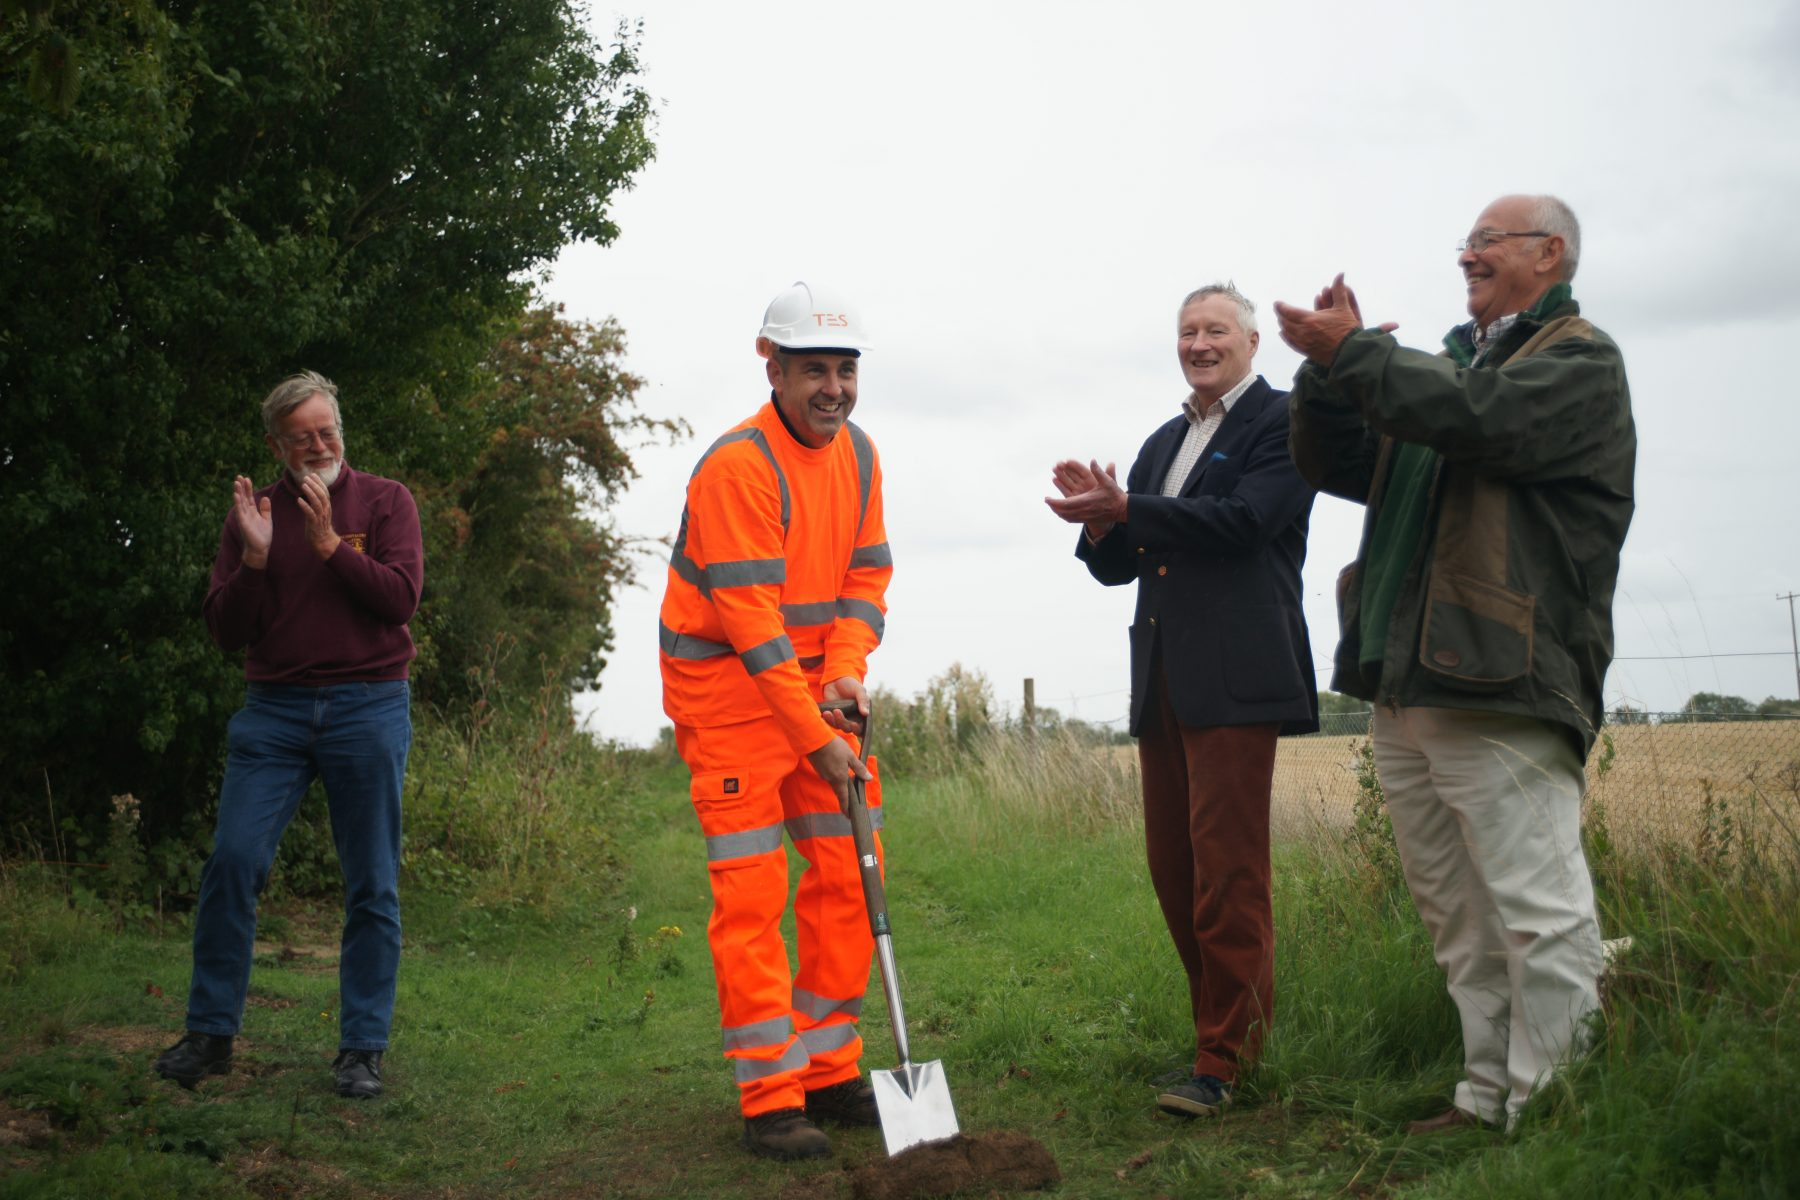 Cutting the 'First Sod' for the extension